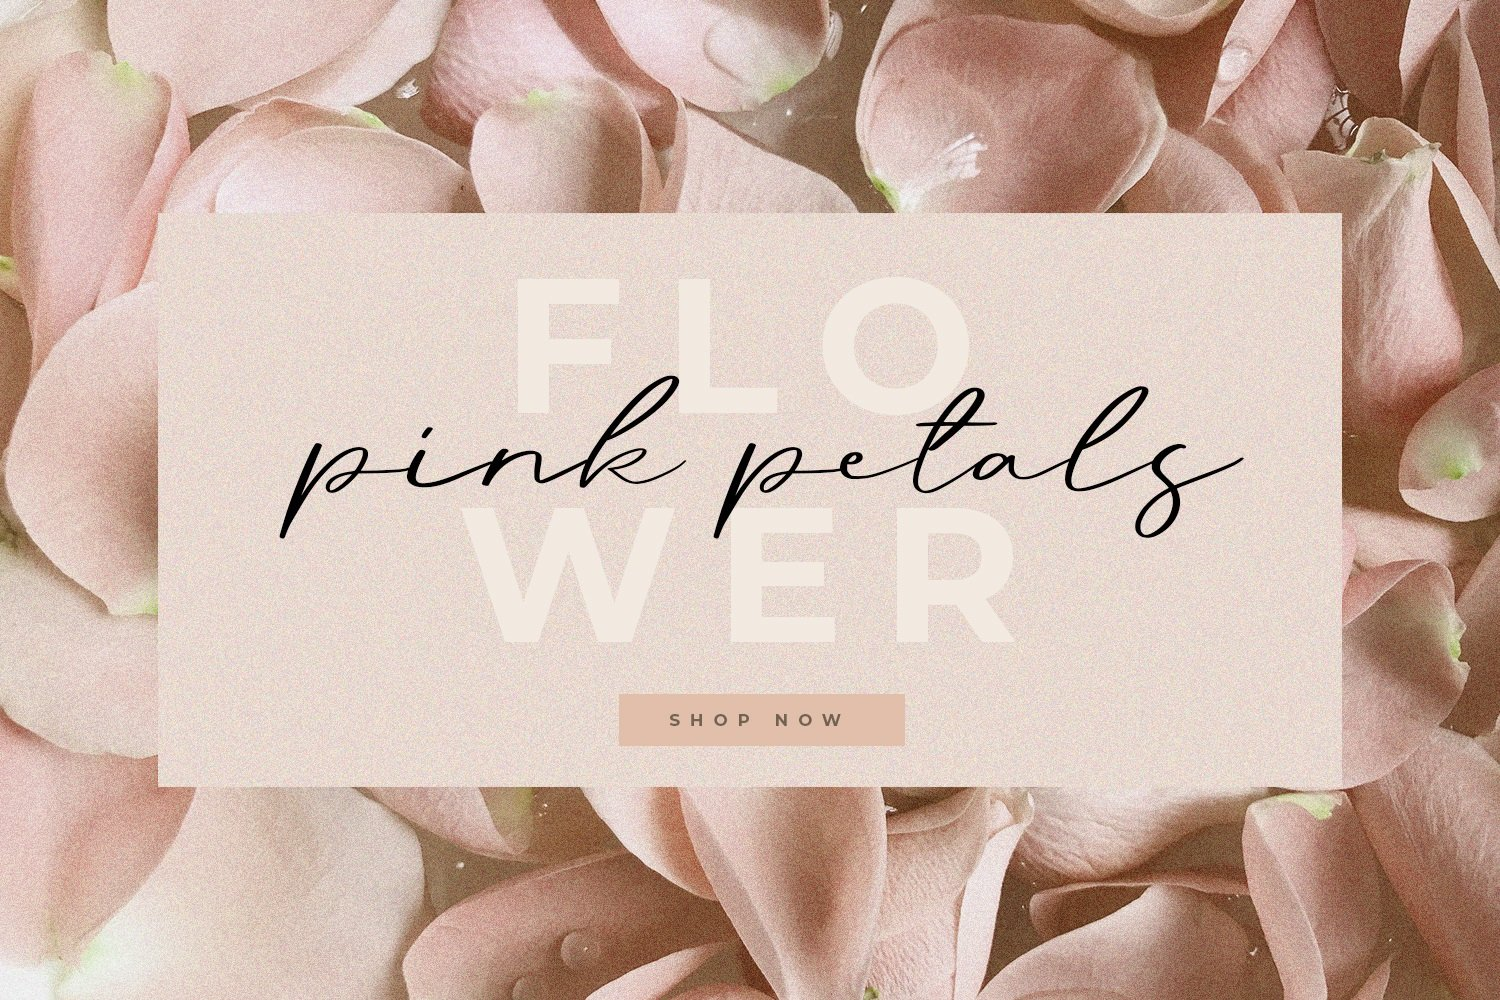 This is a very delicate illustration with peonies and romantic lettering.